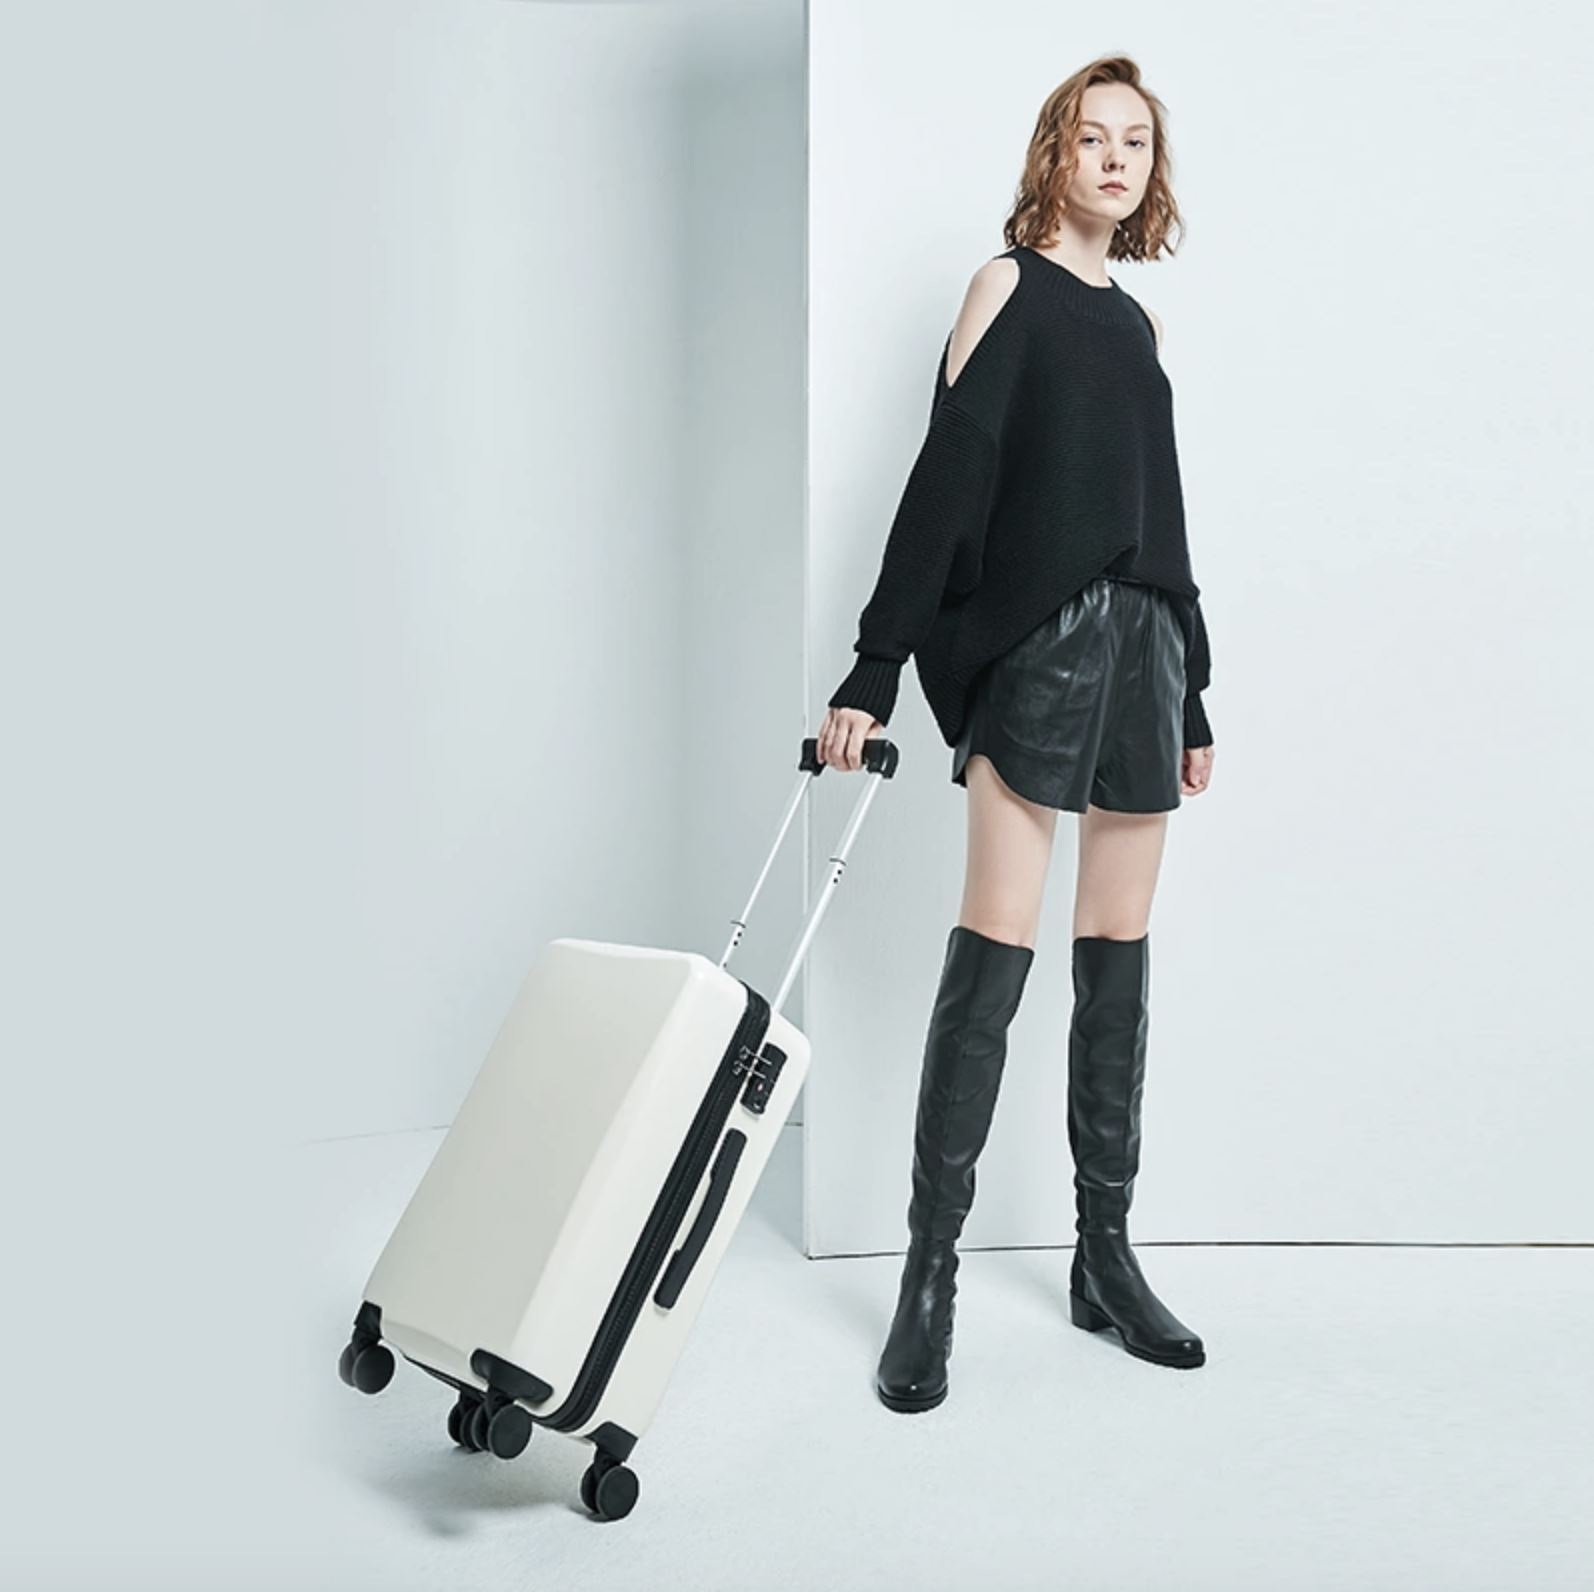 20-inch Matte Carry-on Luggage (外部仓) Sports & Travel LIFEASE